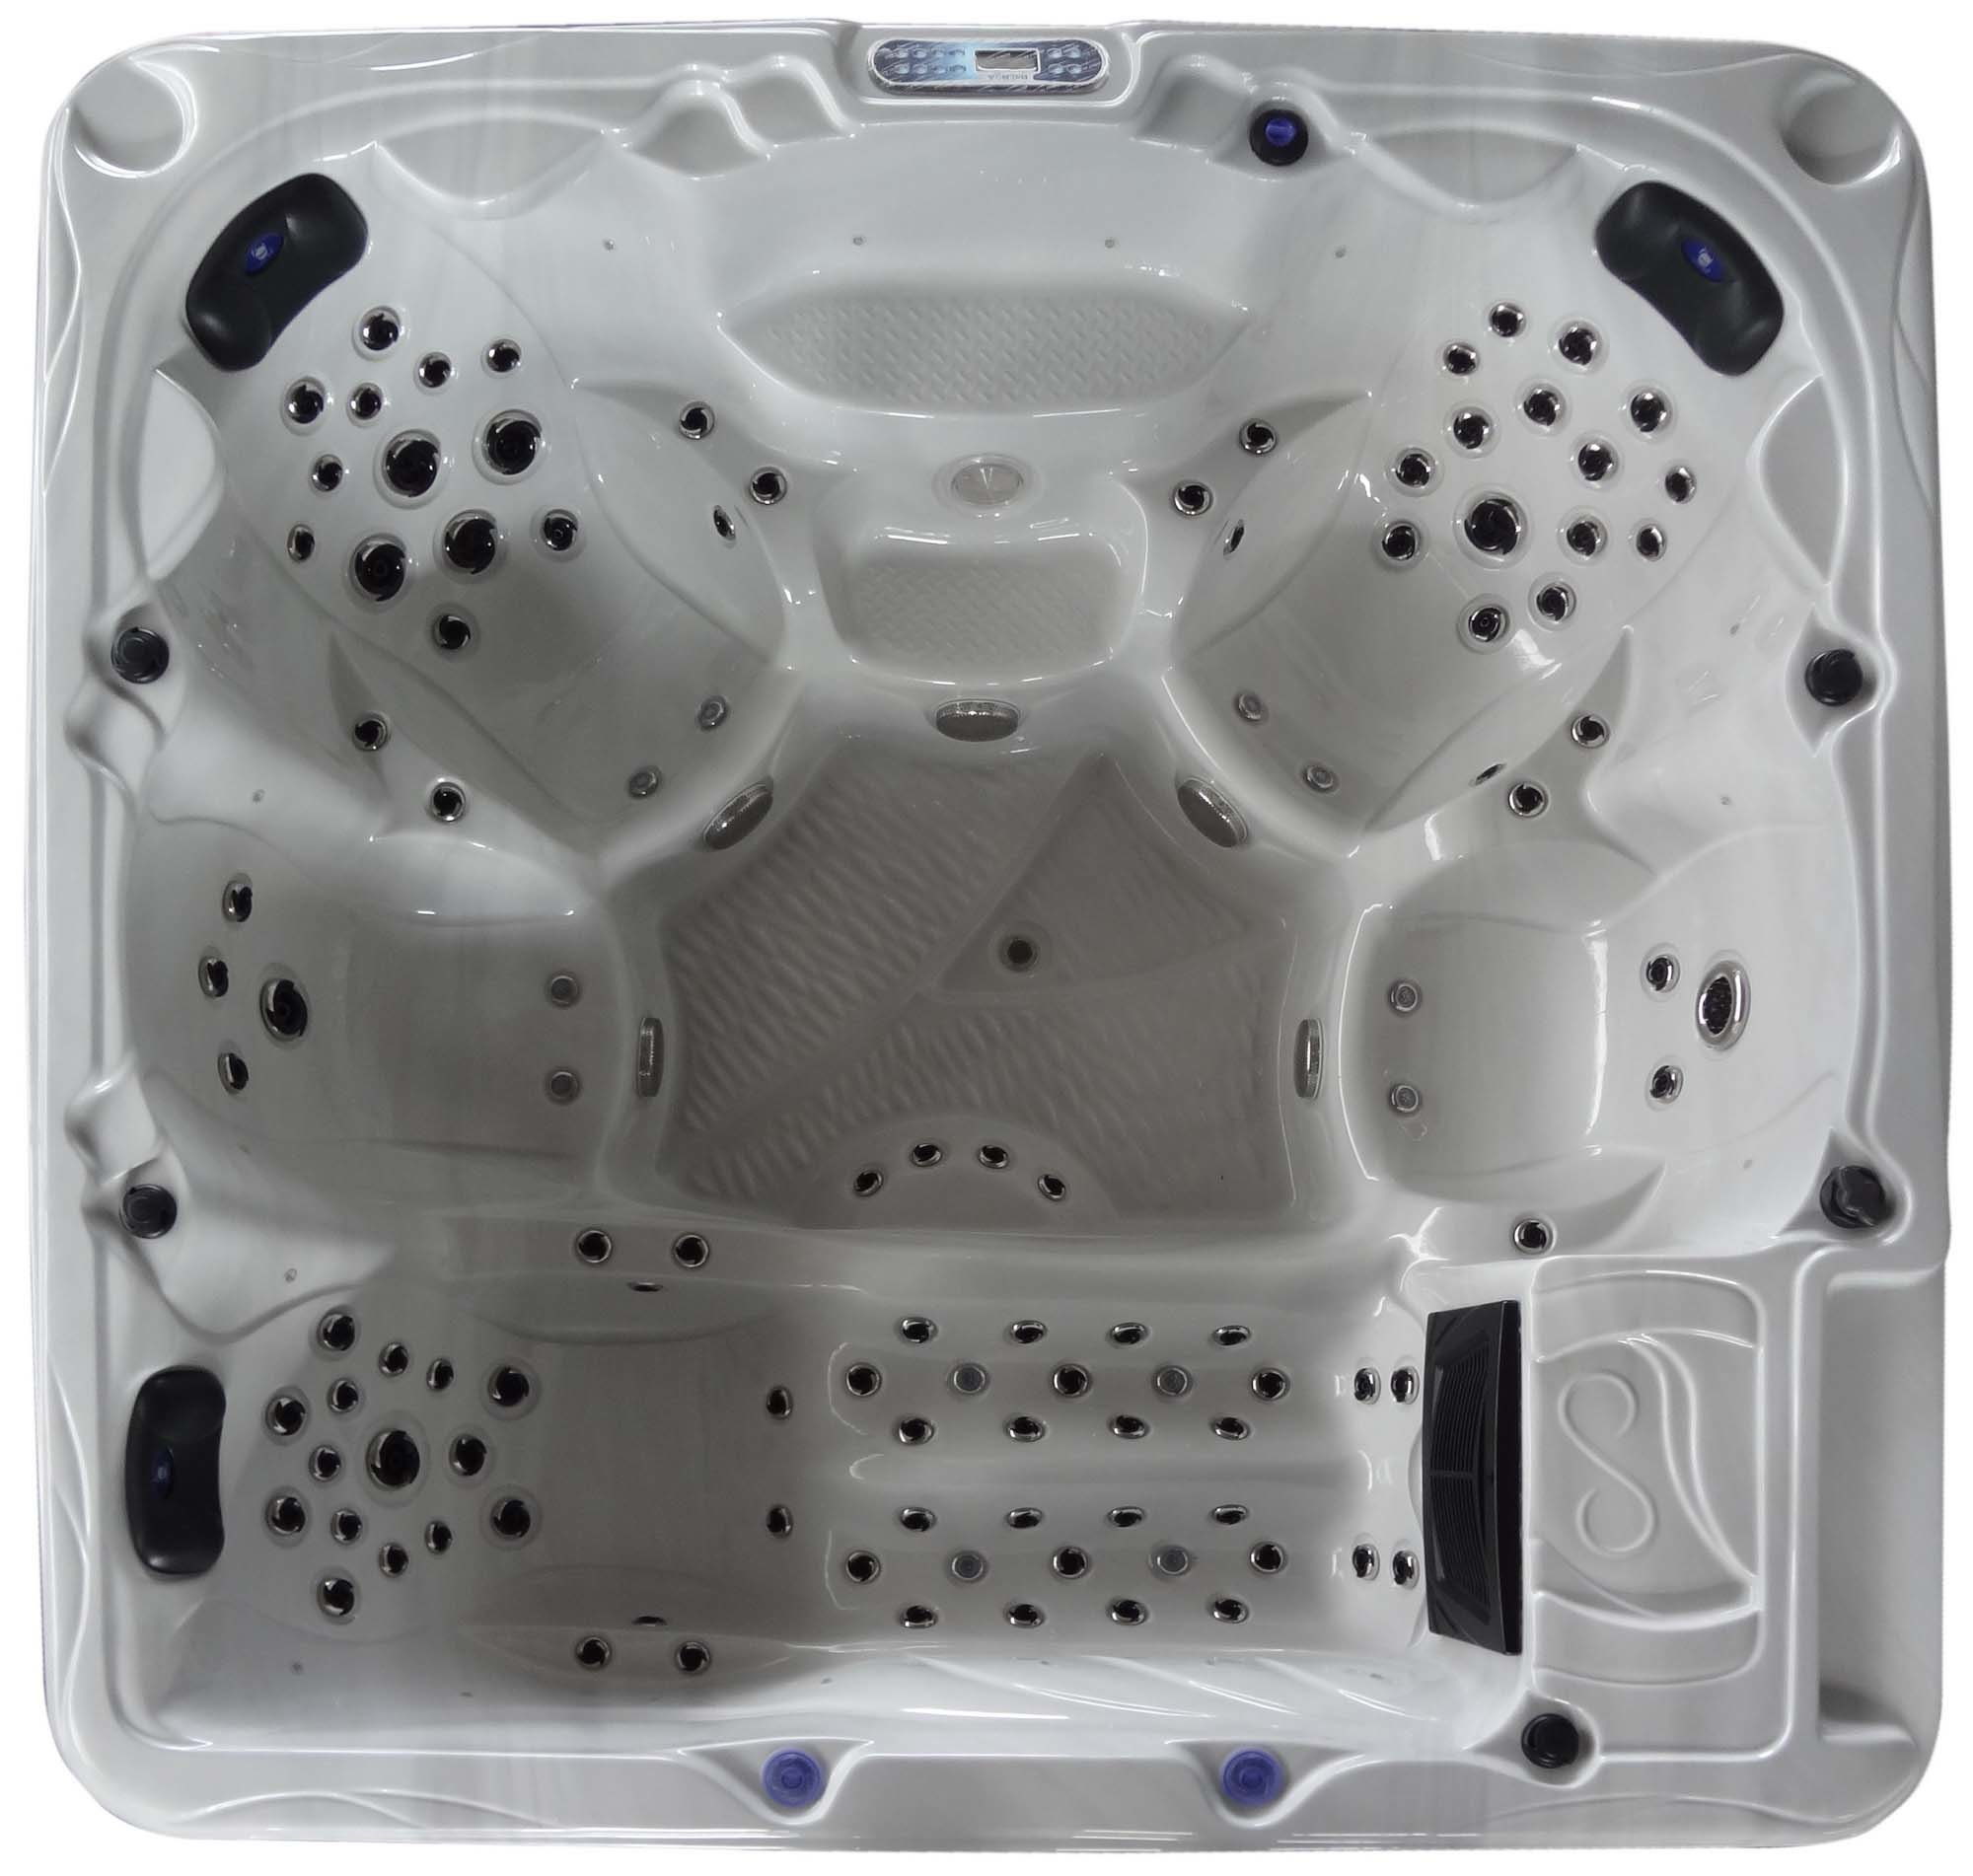 China 121 Jets Best Selling Consumer Products Acrylic Hot Tub with ...